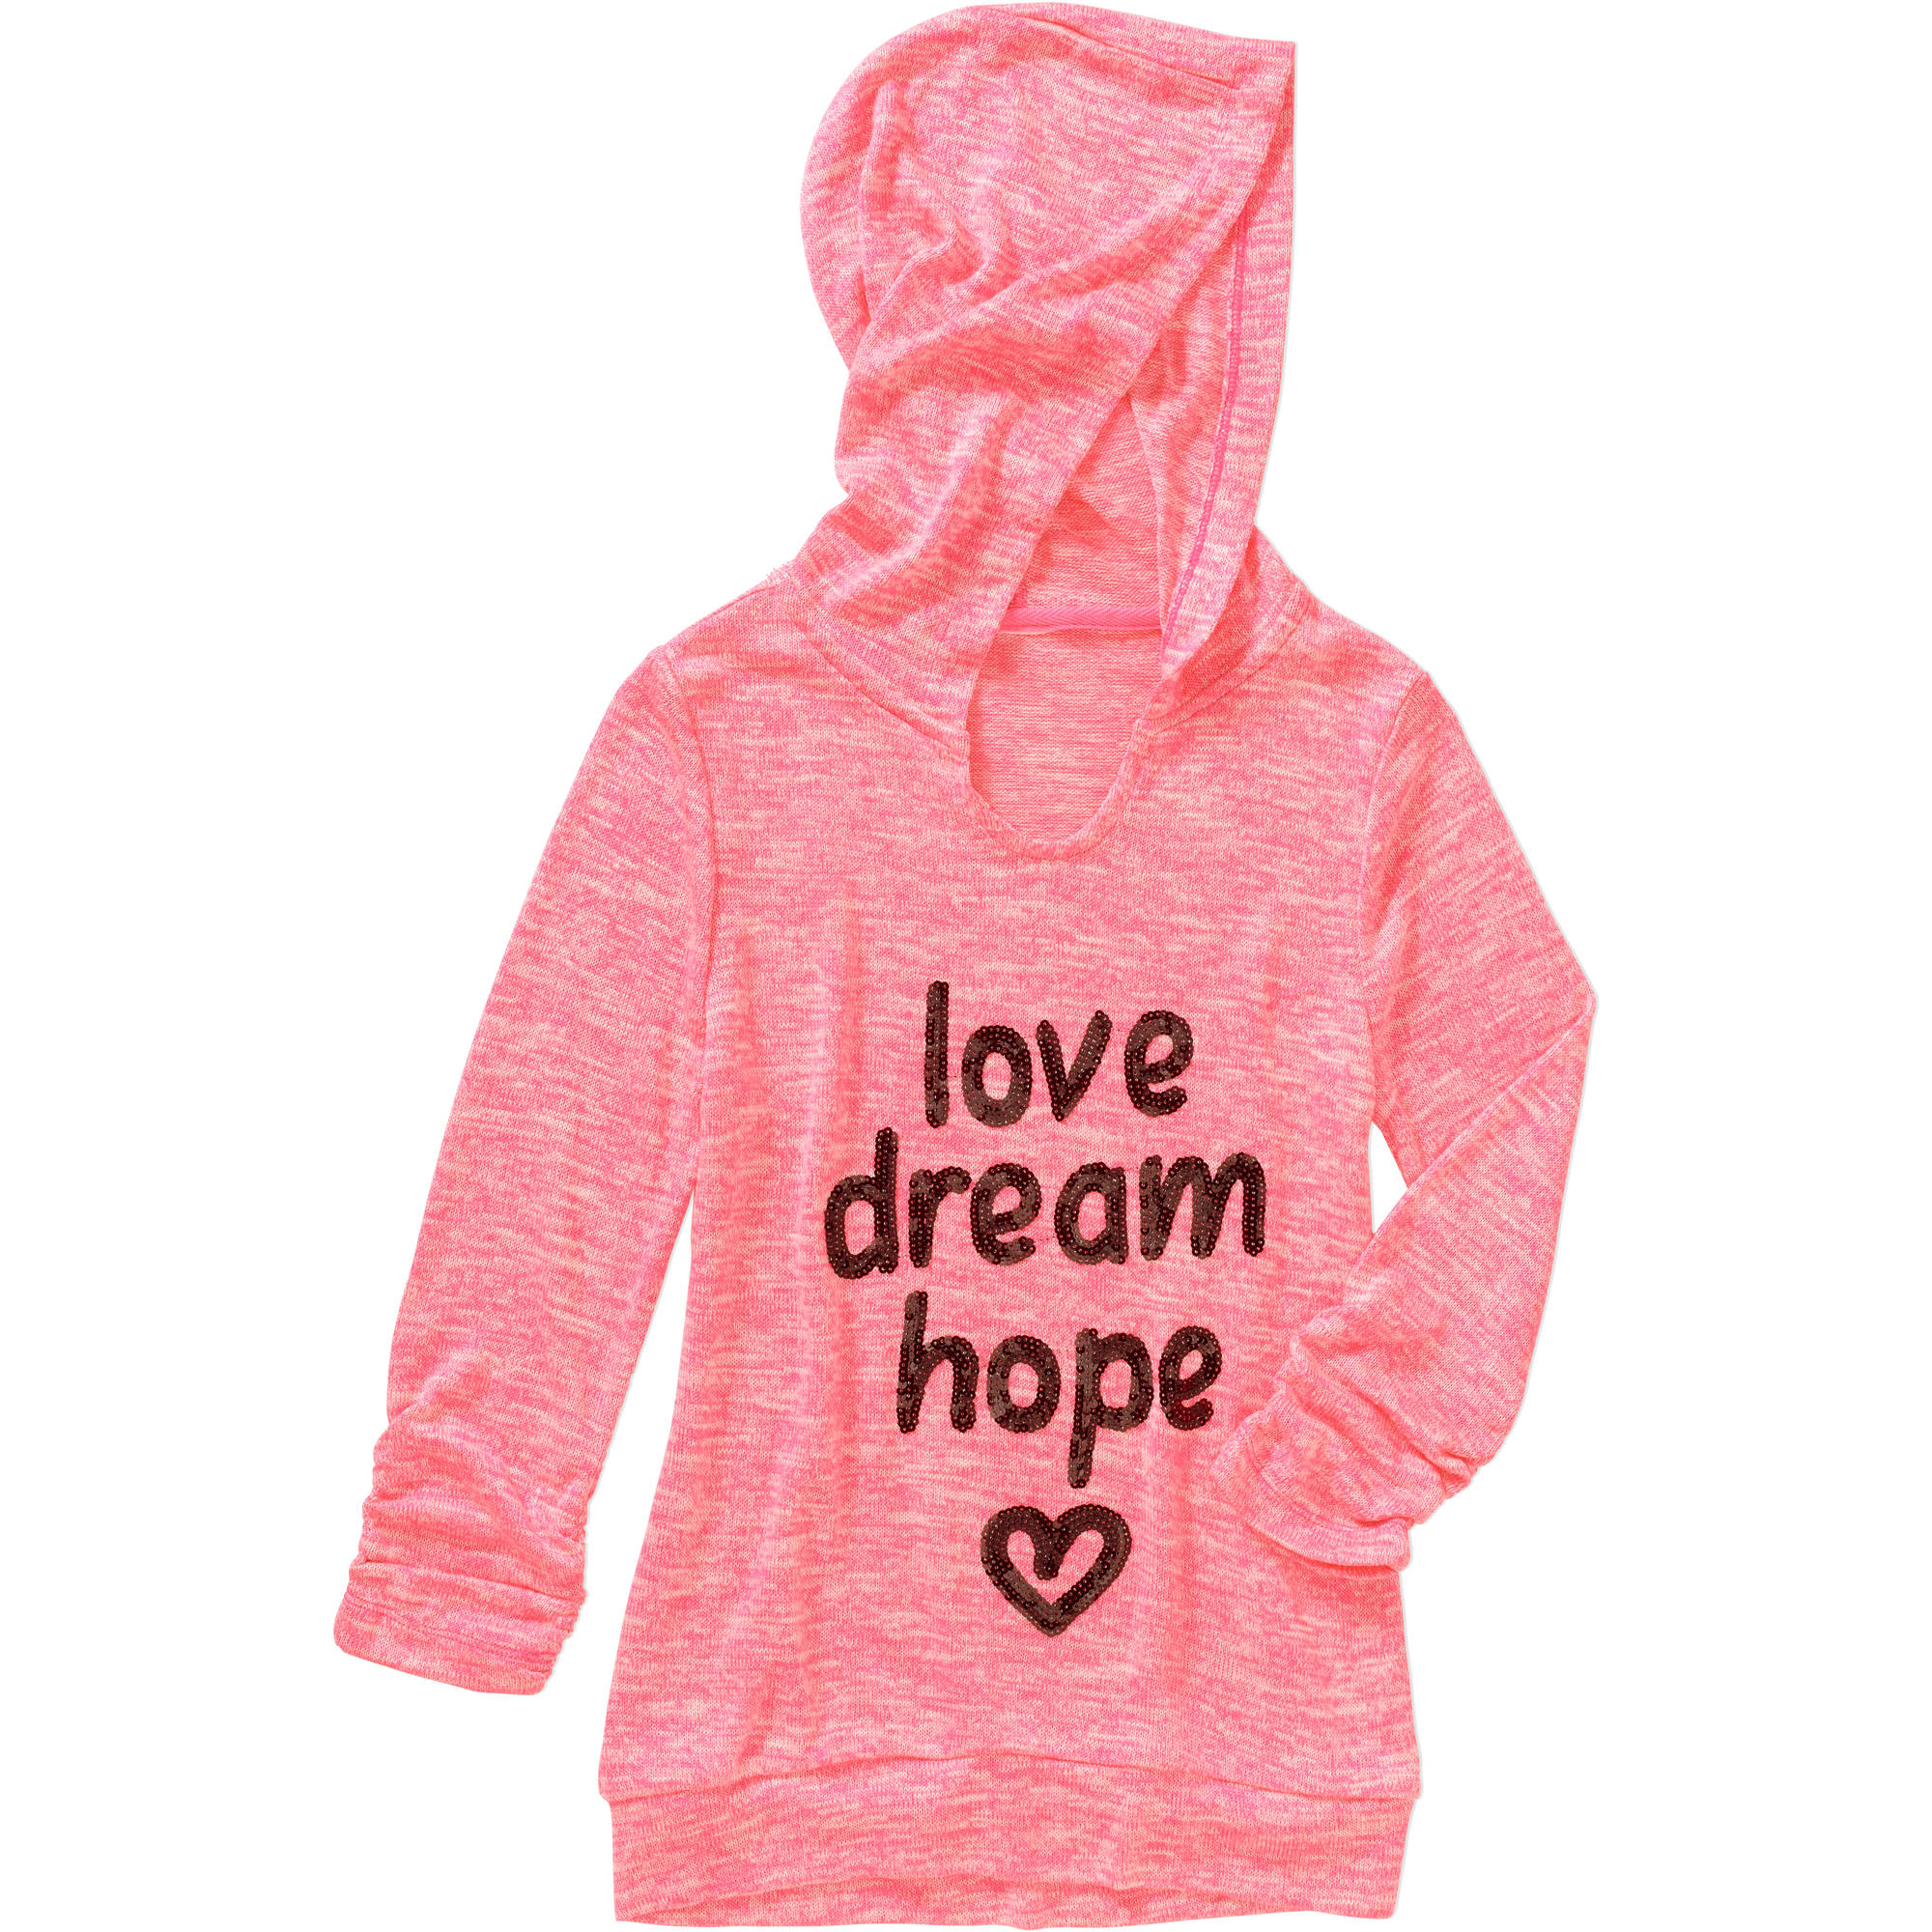 Miss Chievous Girls' Cinched Sleeve Scoop Neck Love Dream Hope Hoodie